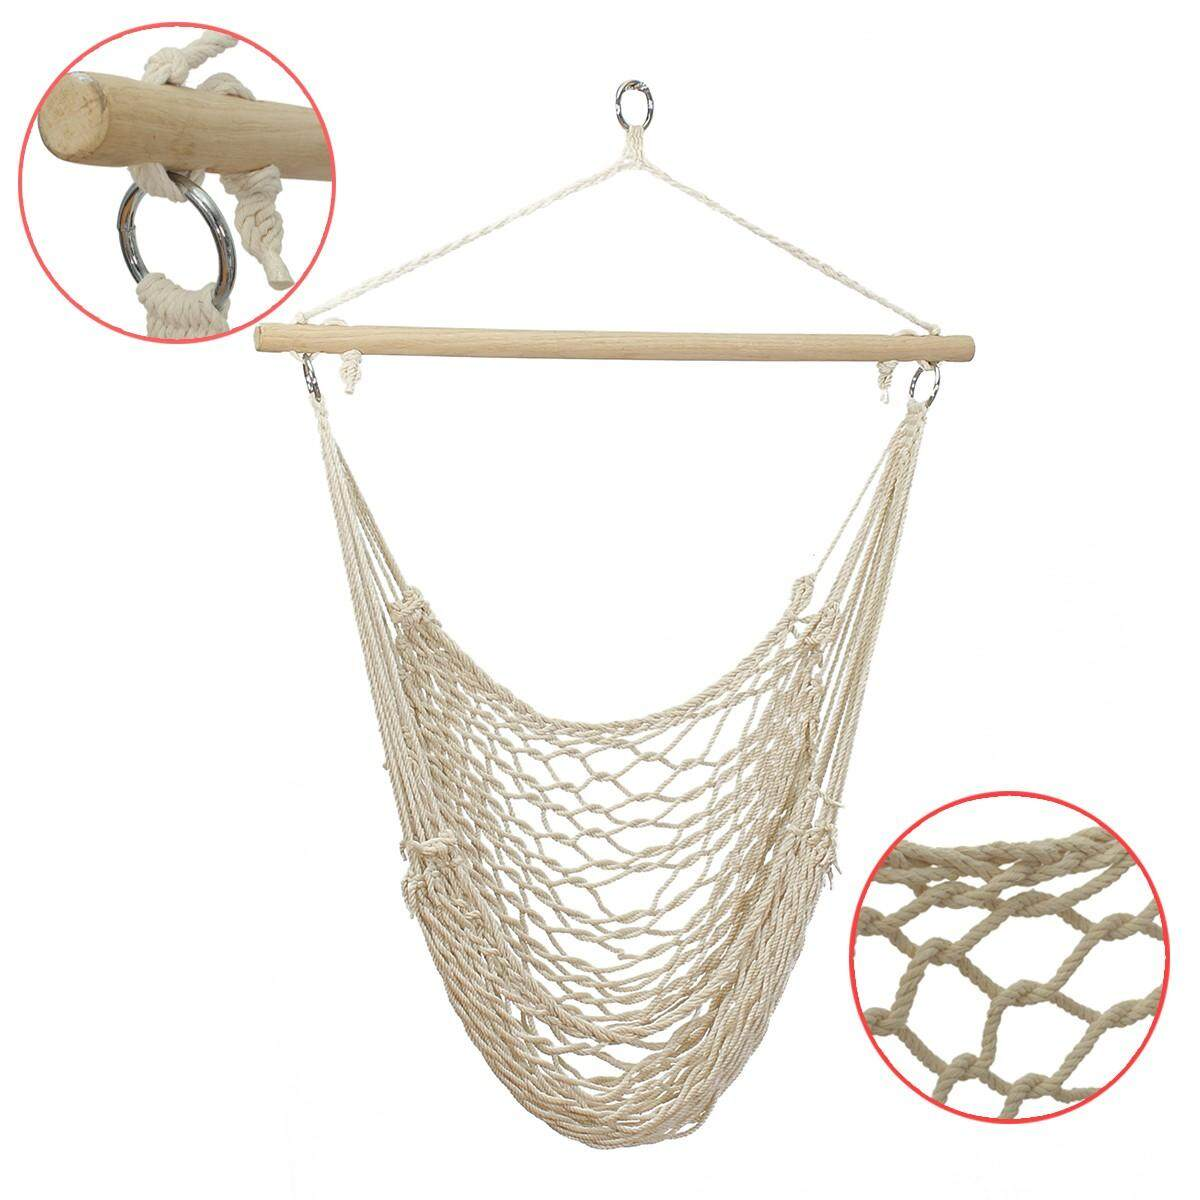 Hanging Hammock Cotton Woven Rope Wooden Bar Swing Garden Patio Chair Seat By Audew.